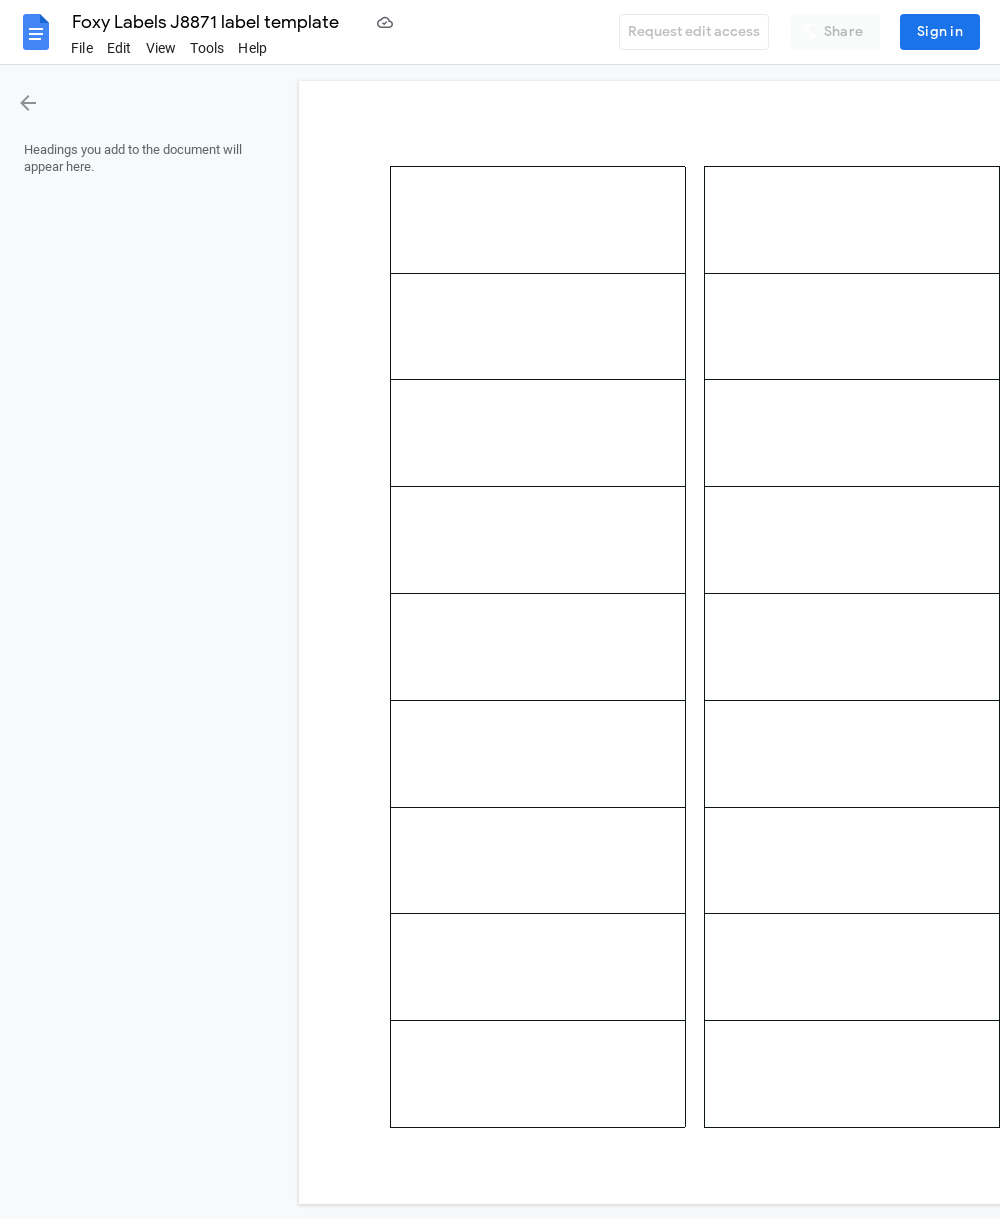 Avery J8871 Label Template